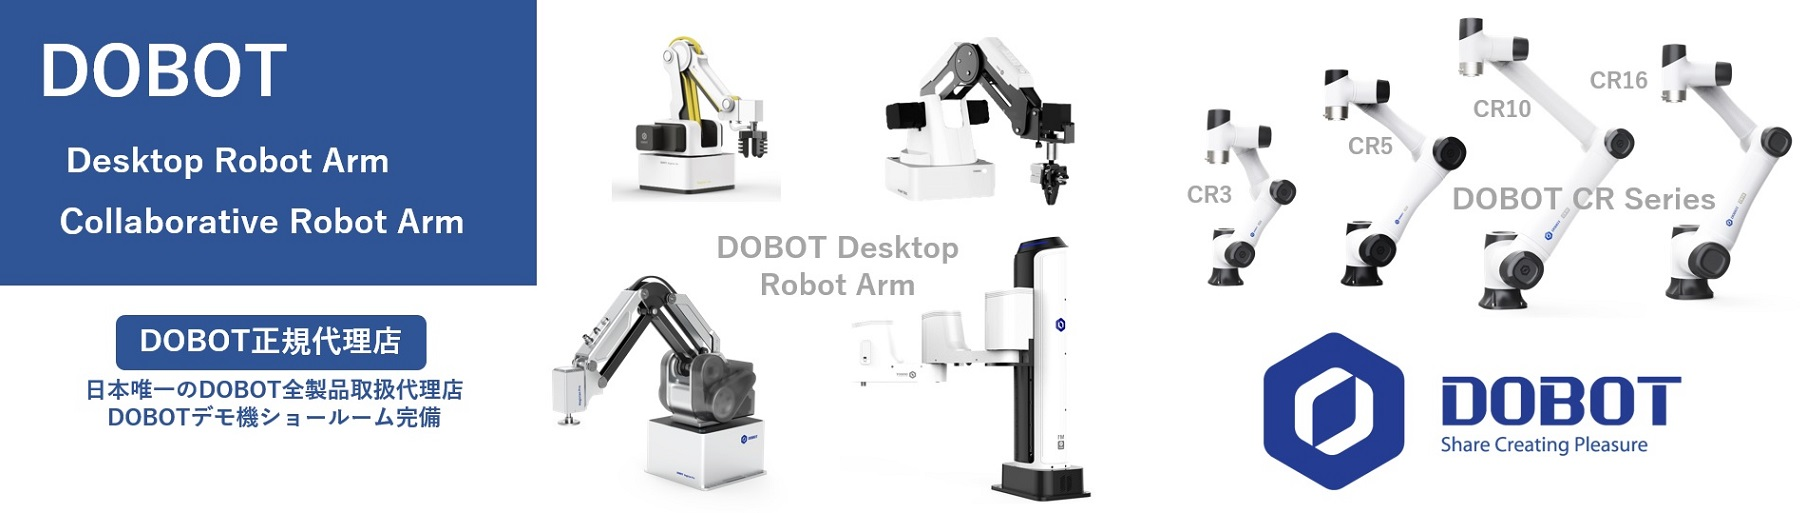 DOBOT Full Product Lineup